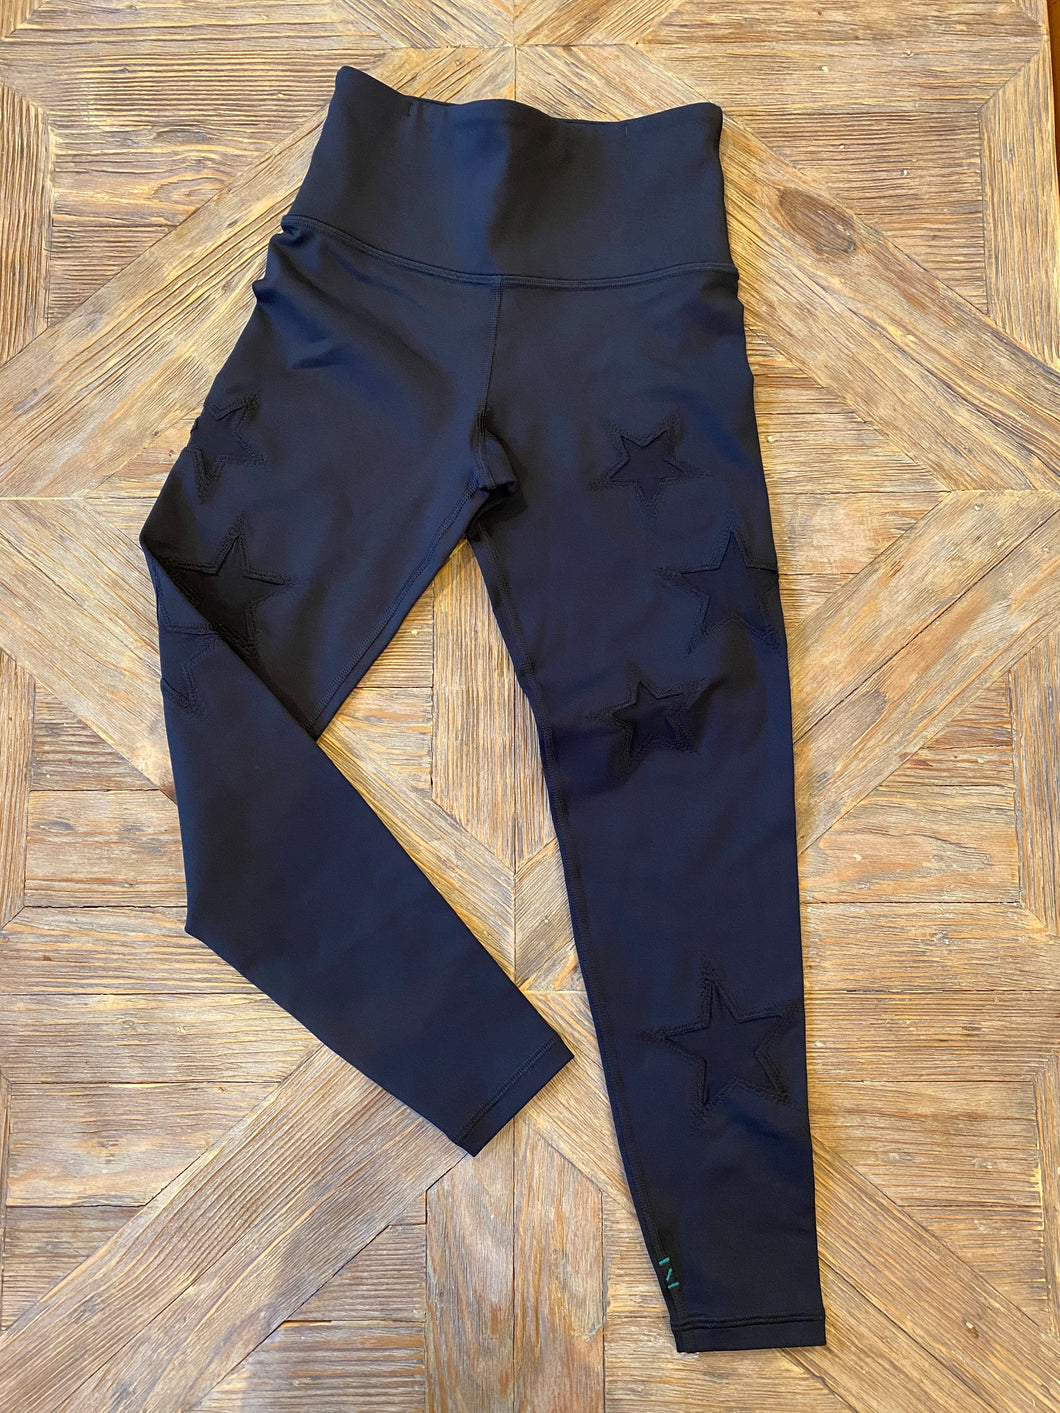 Nancy Rose Star Cut Out Pant - ONE PAIR LEFT!